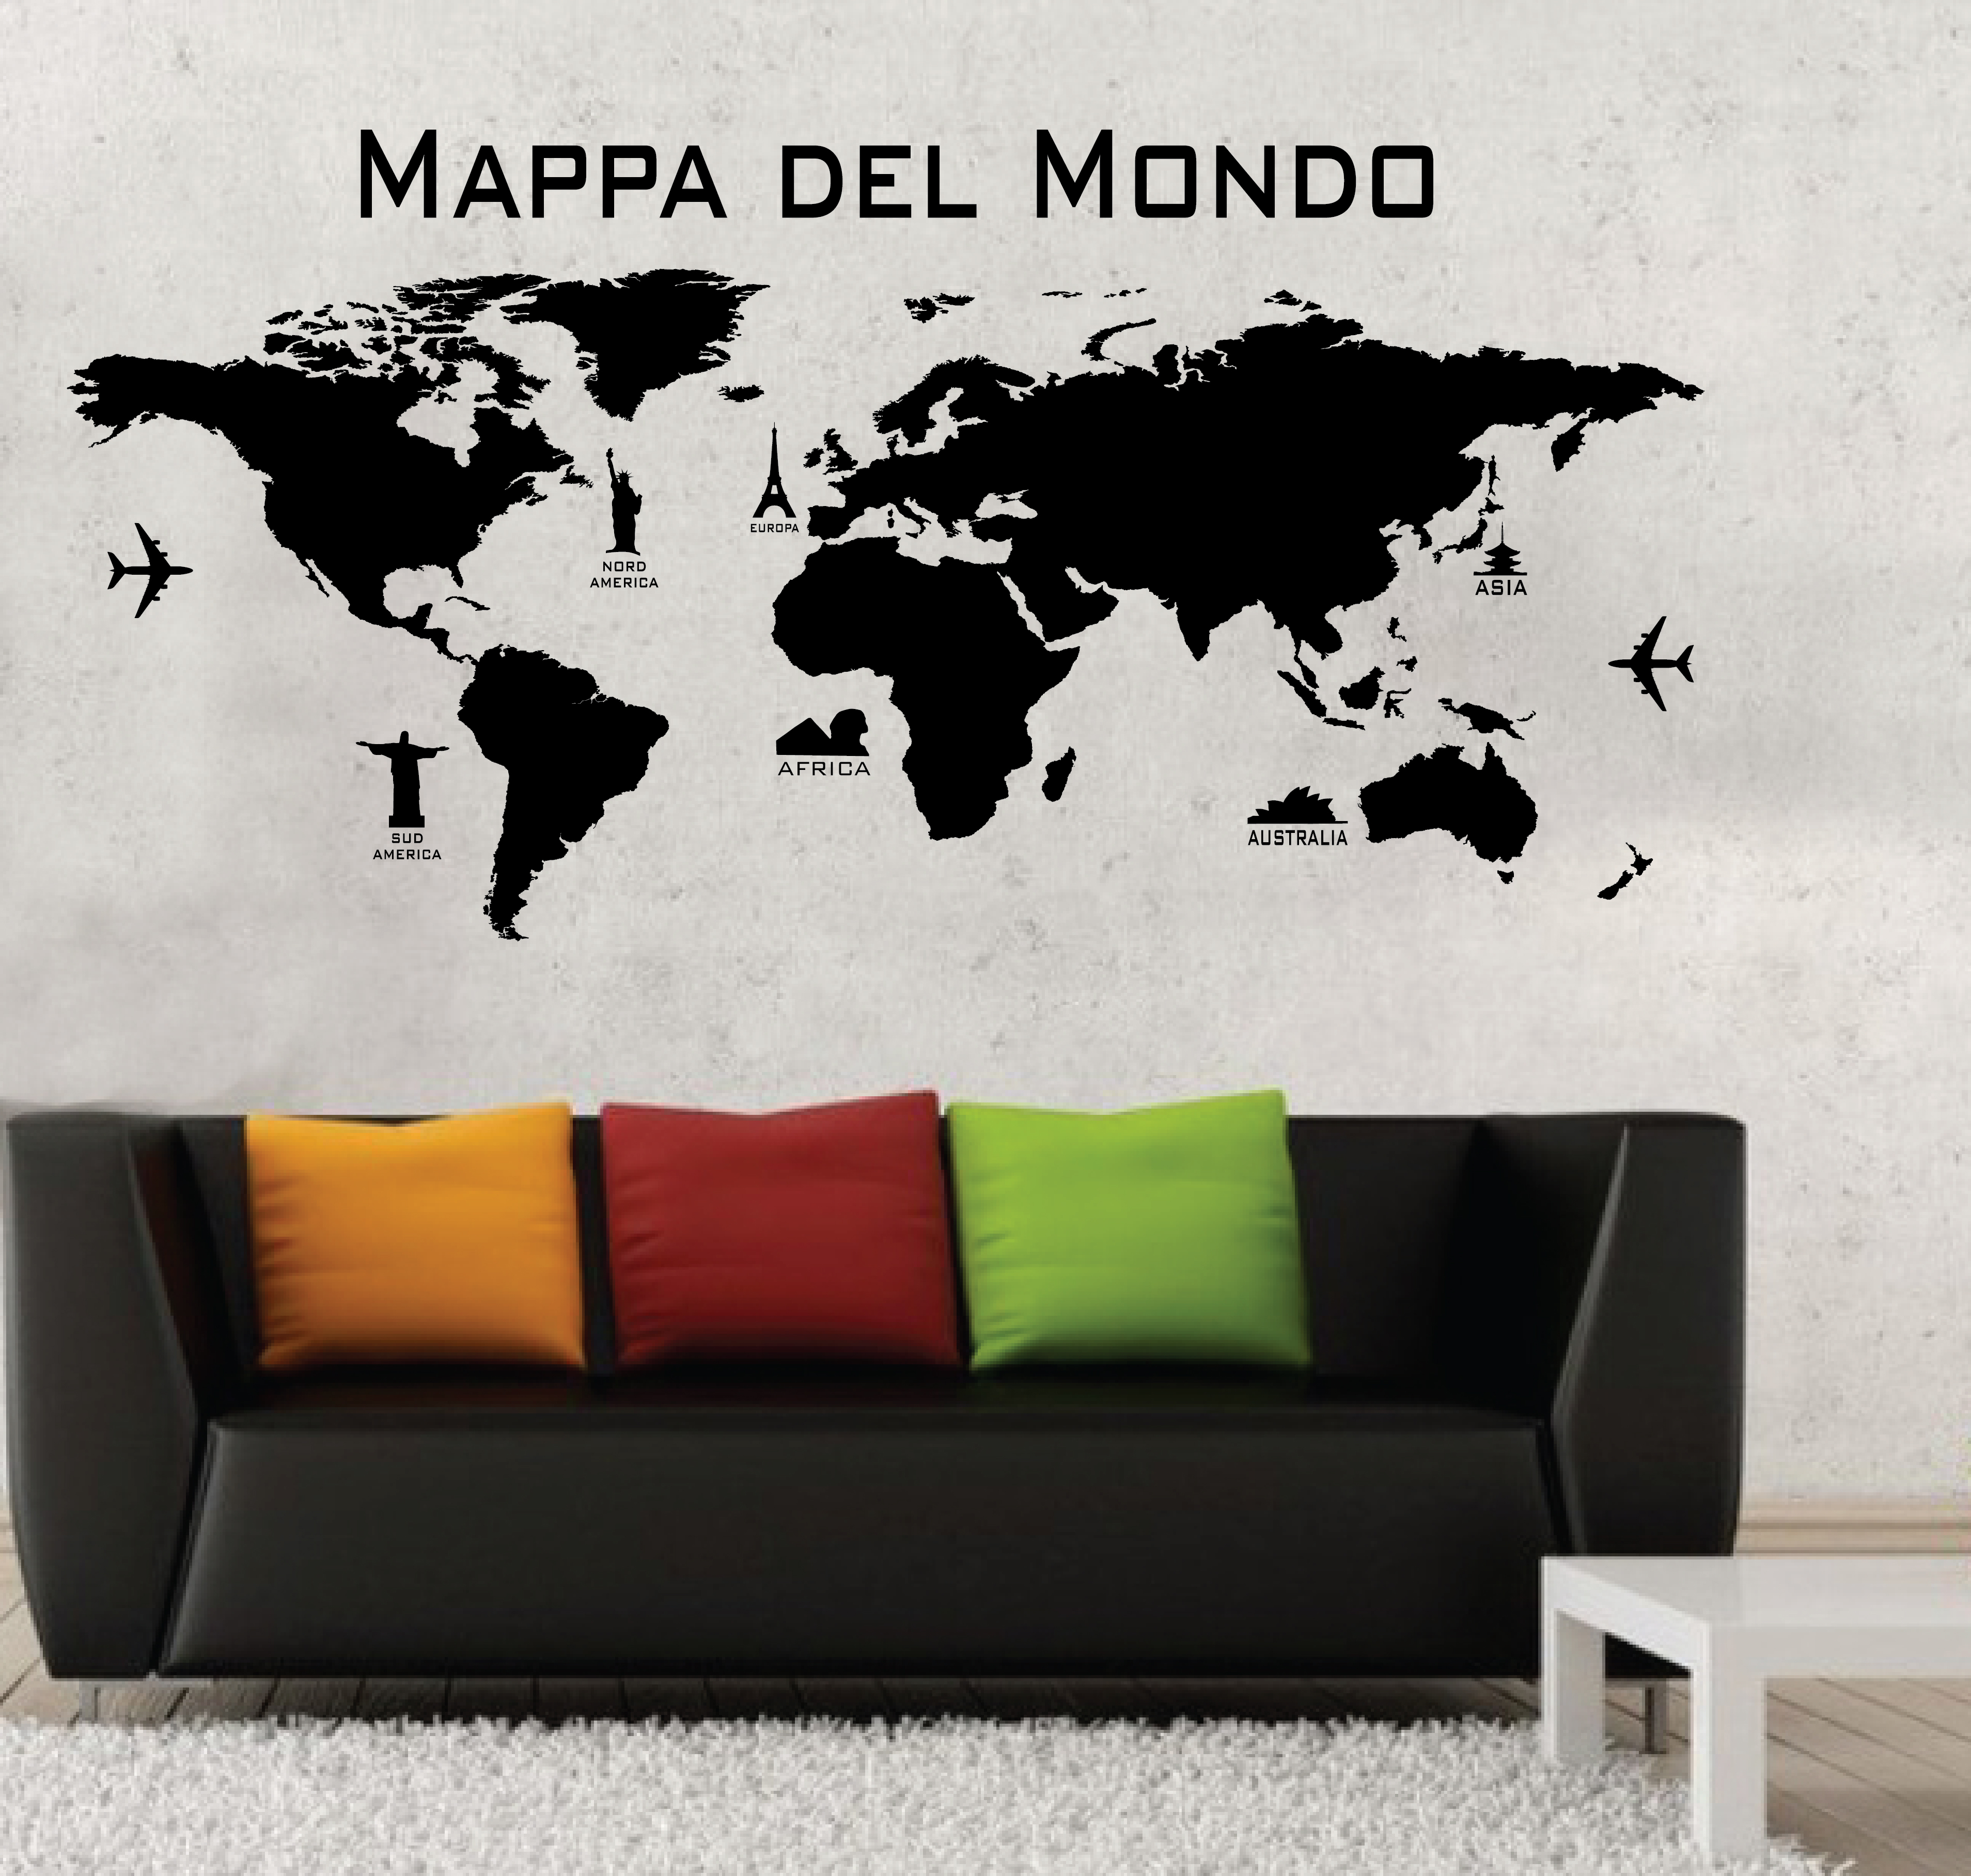 Cartina Mondo Da Parete.Wall Stickers Adesivi Murali Mappa Del Mondo Cartina World Map Muro Monumenti Ebay